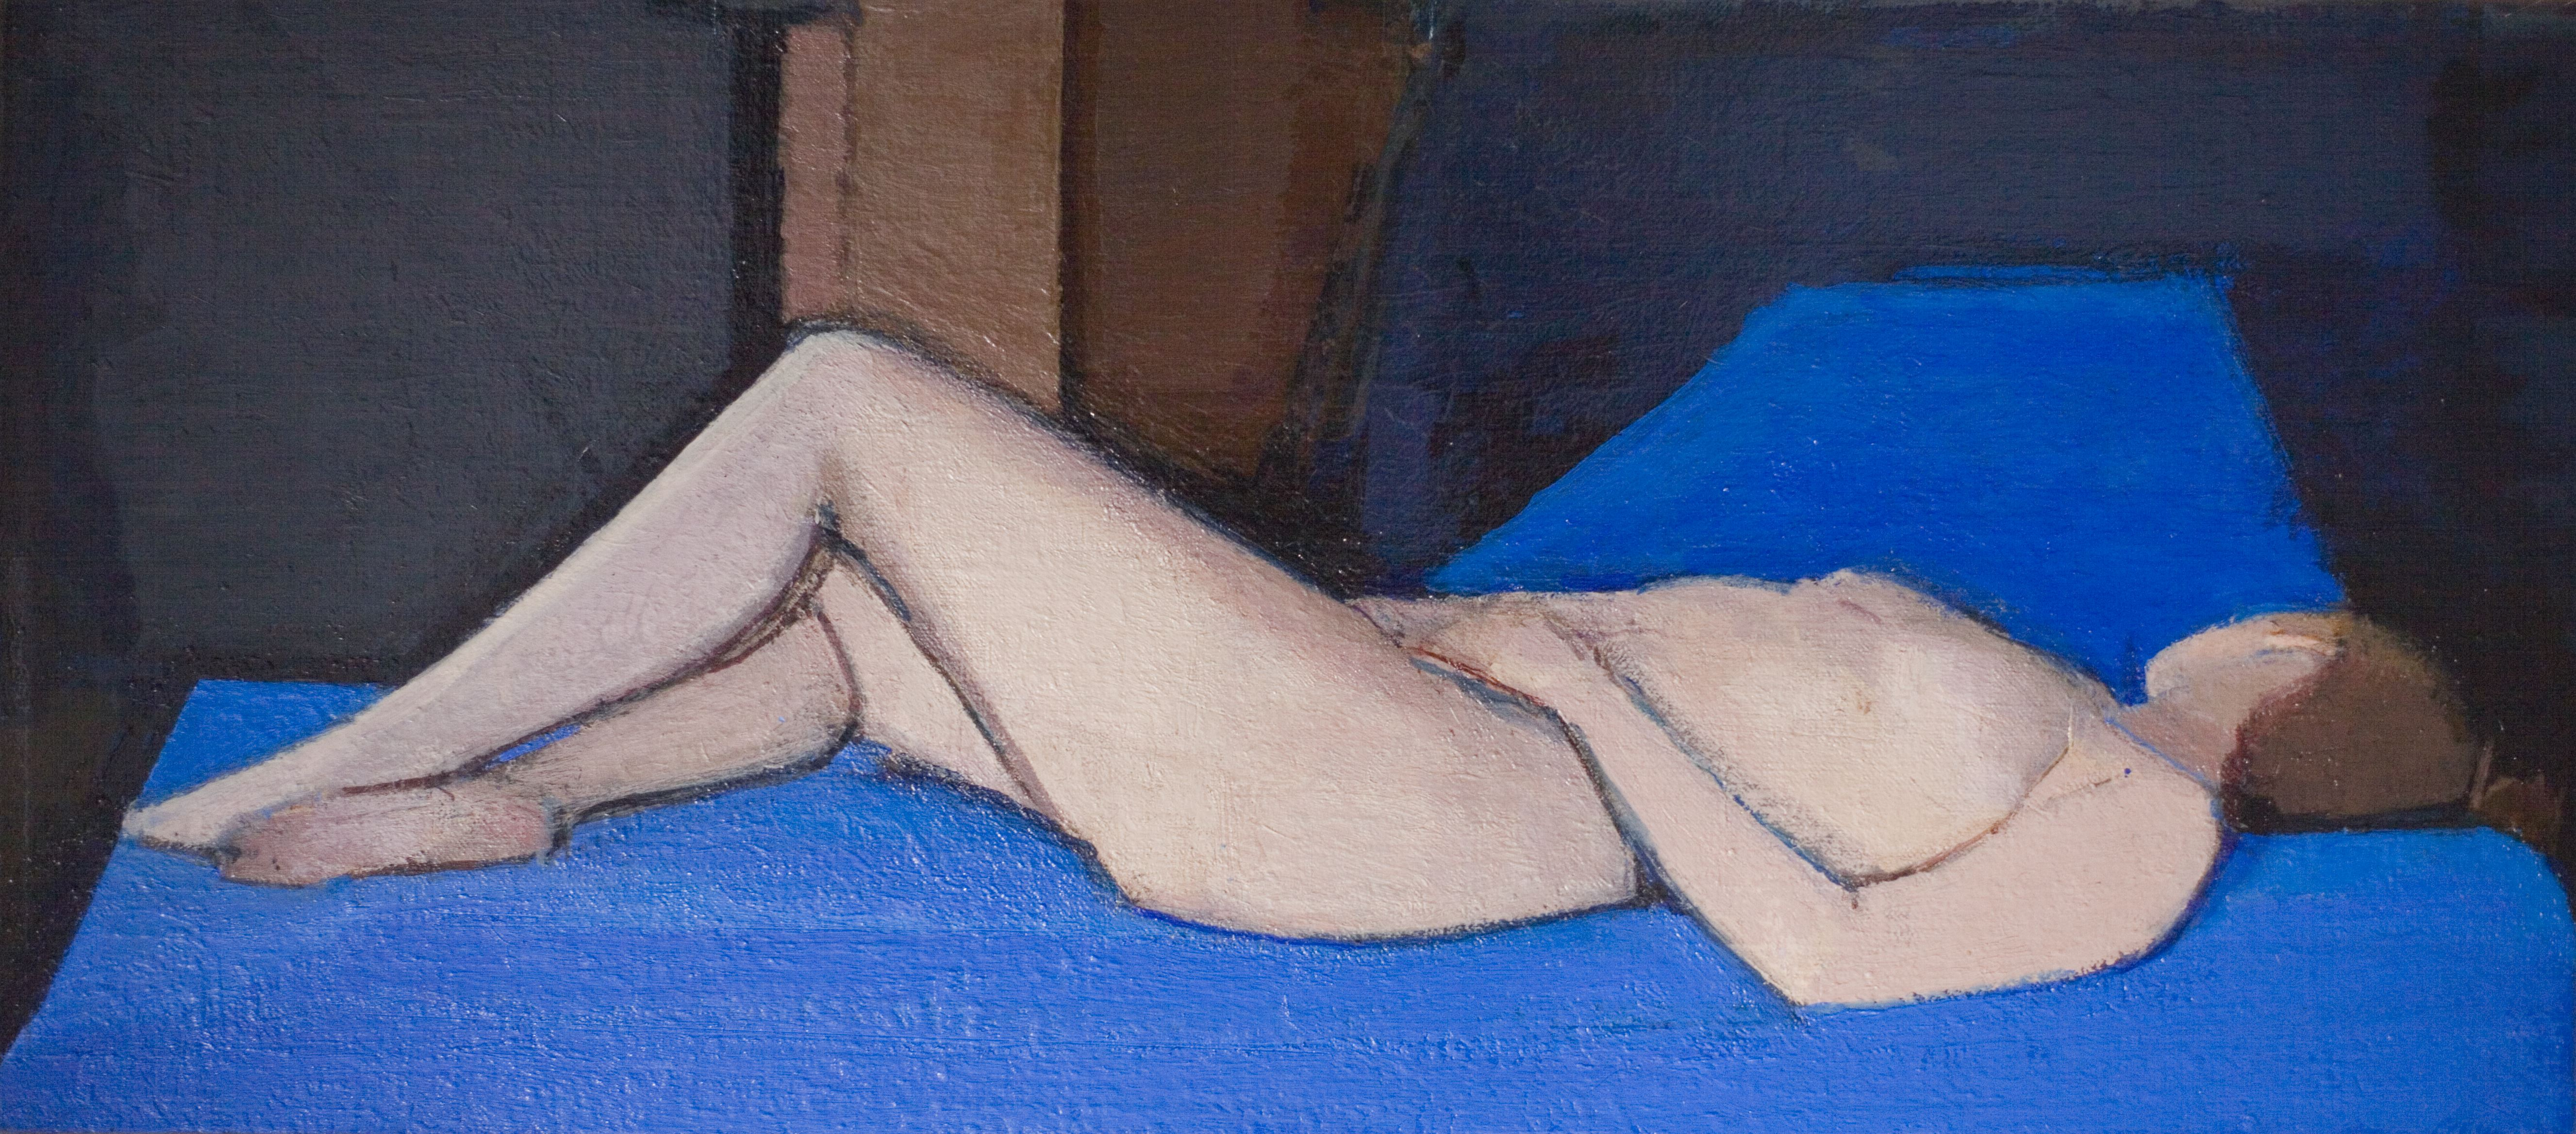 Giotto's Blue Nude, 2012-14